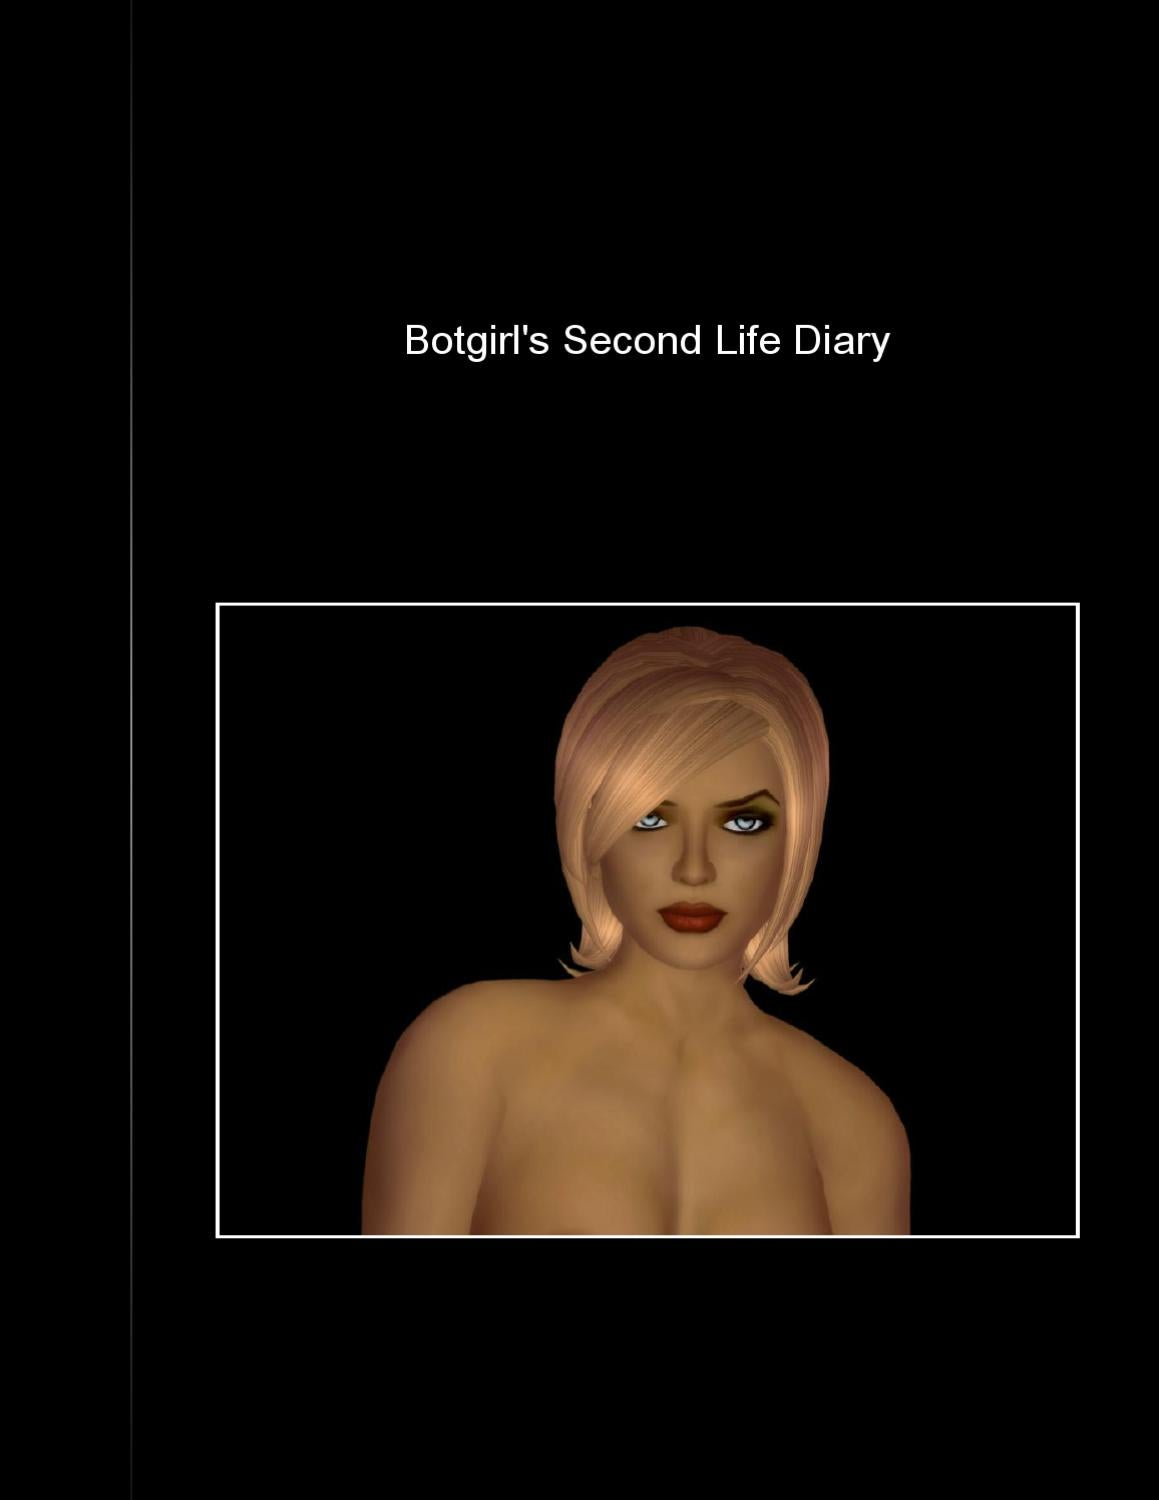 769825a82f Botgirl s Second Life Diary  3 8 08 - 11 17 10 by Botgirl Questi - issuu